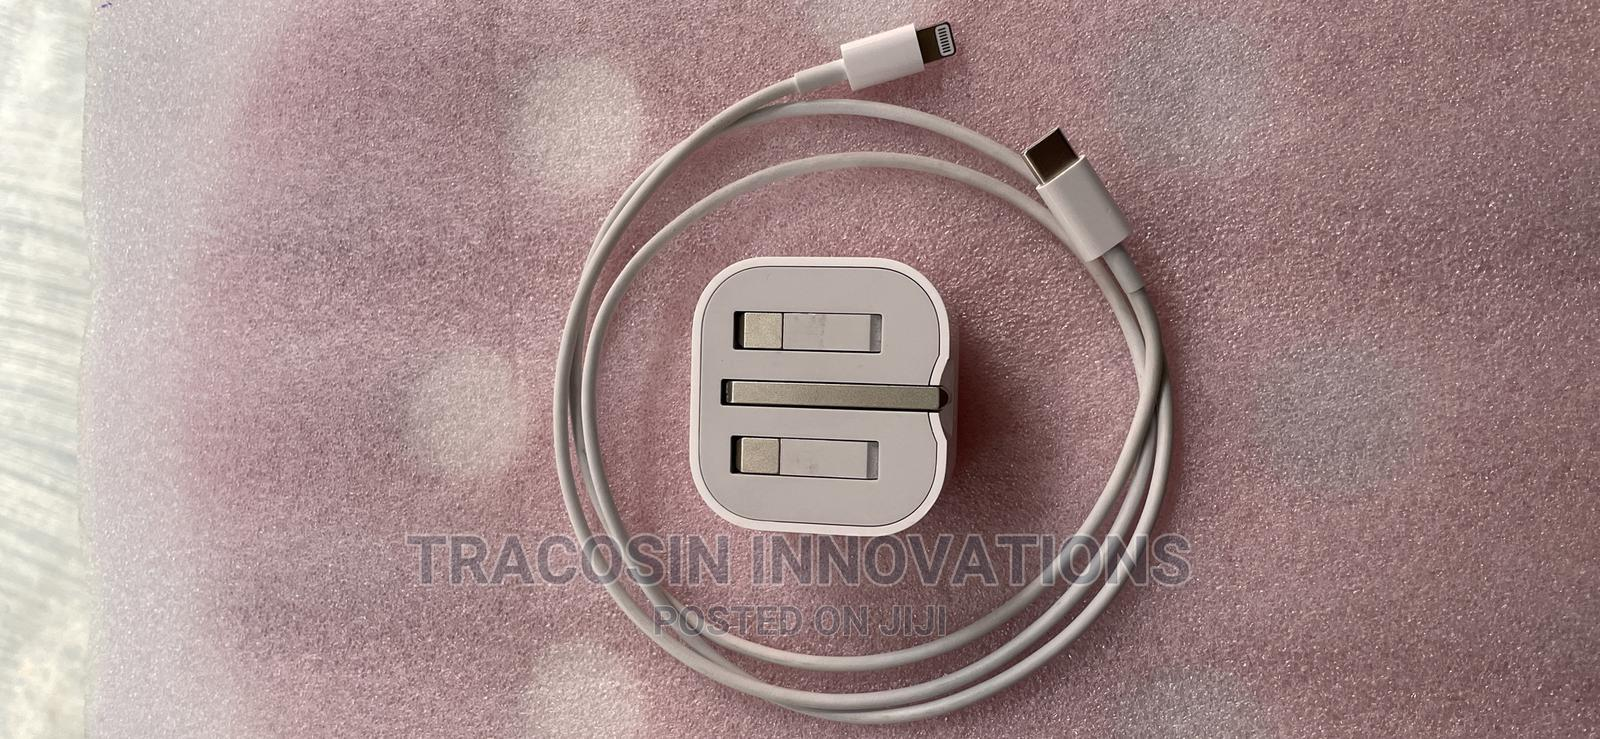 iPhone 12, 12 Pro, 12 Pro Max 20w Charger | Accessories & Supplies for Electronics for sale in Yaba, Lagos State, Nigeria